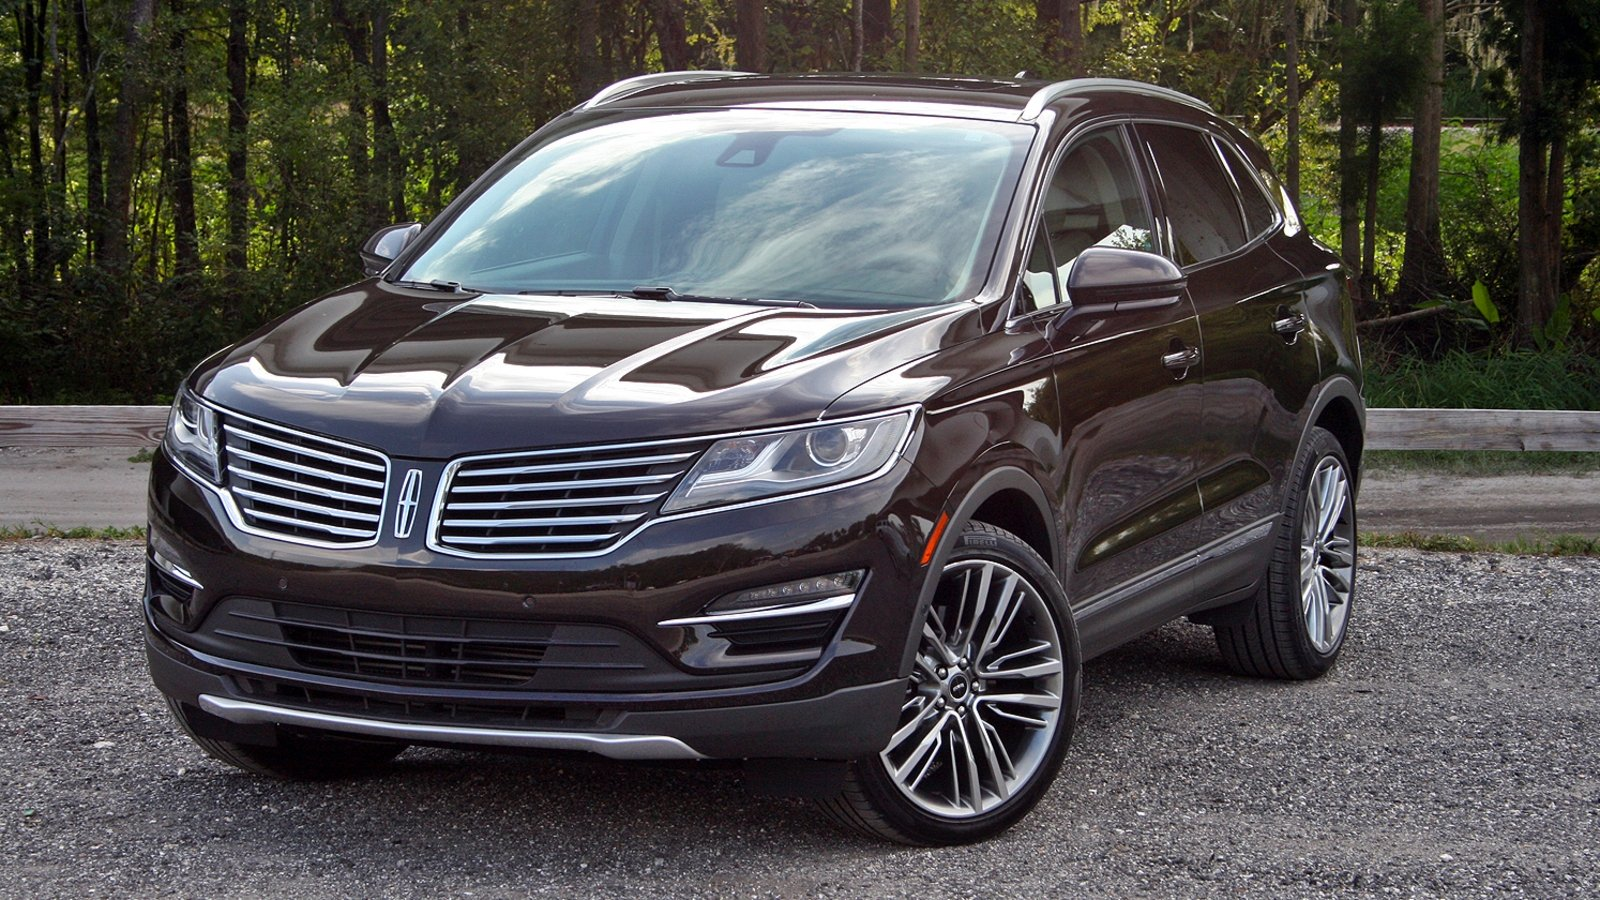 2015 lincoln mkc driven review top speed. Black Bedroom Furniture Sets. Home Design Ideas